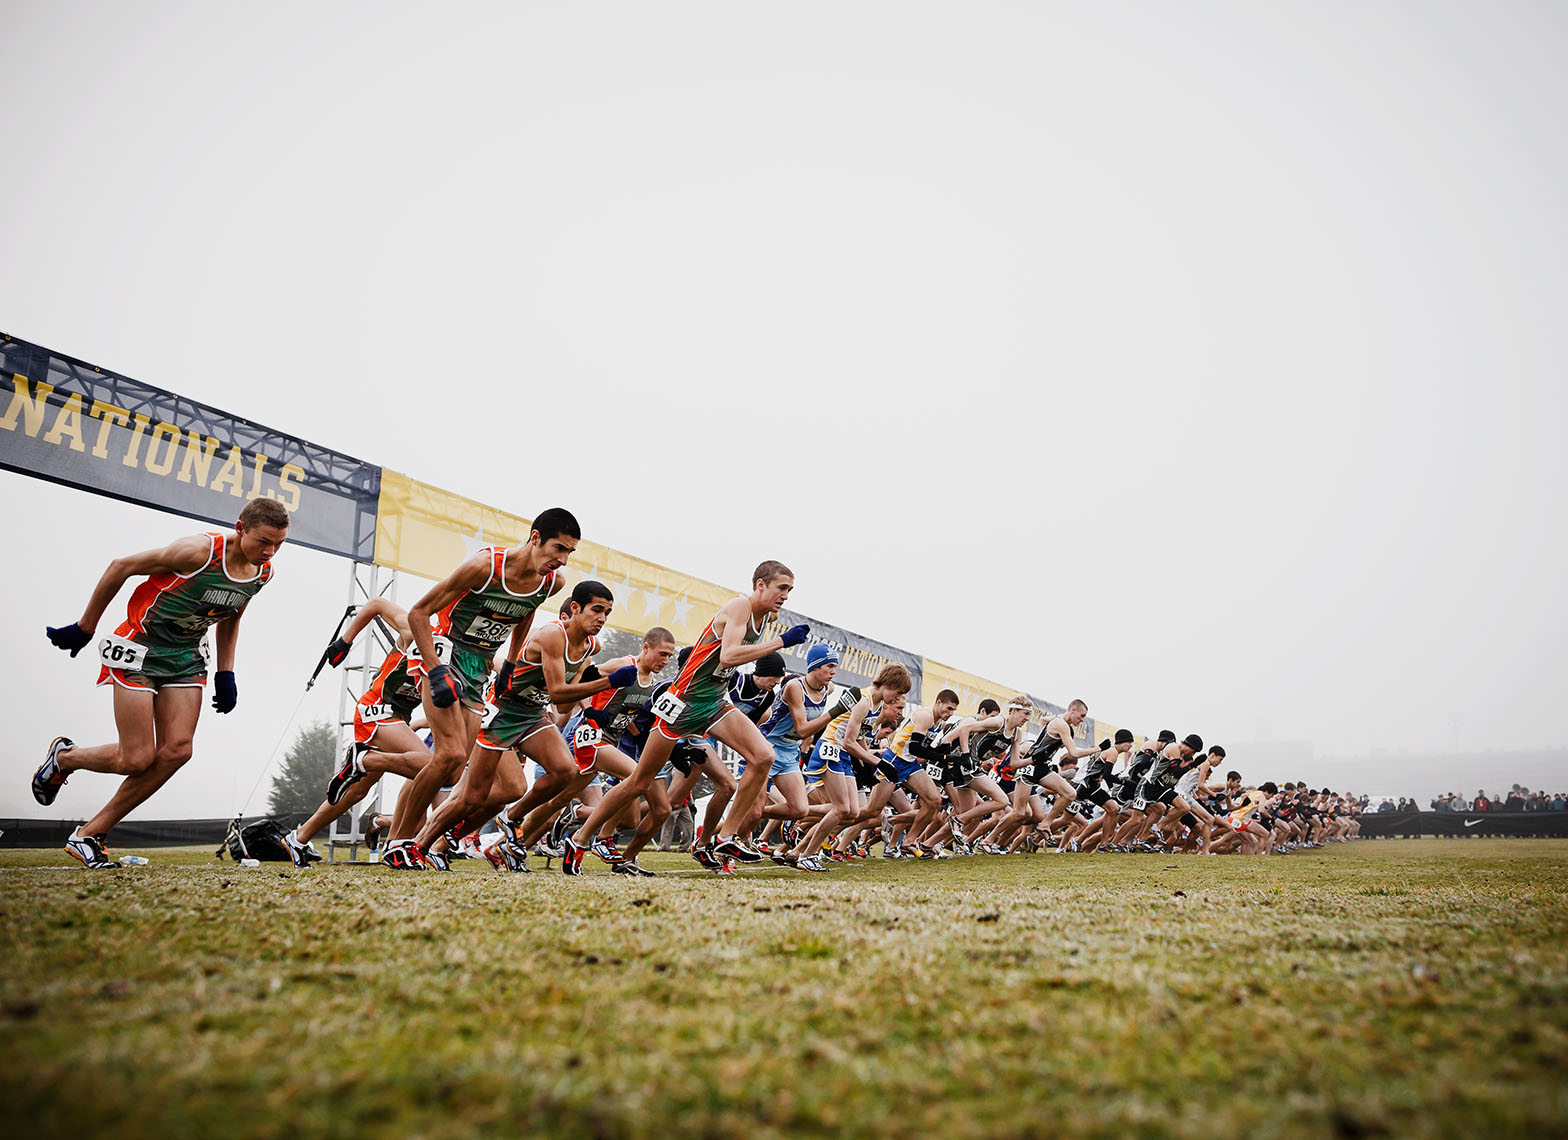 NikeCrossNationals_DanRoot_29.JPG